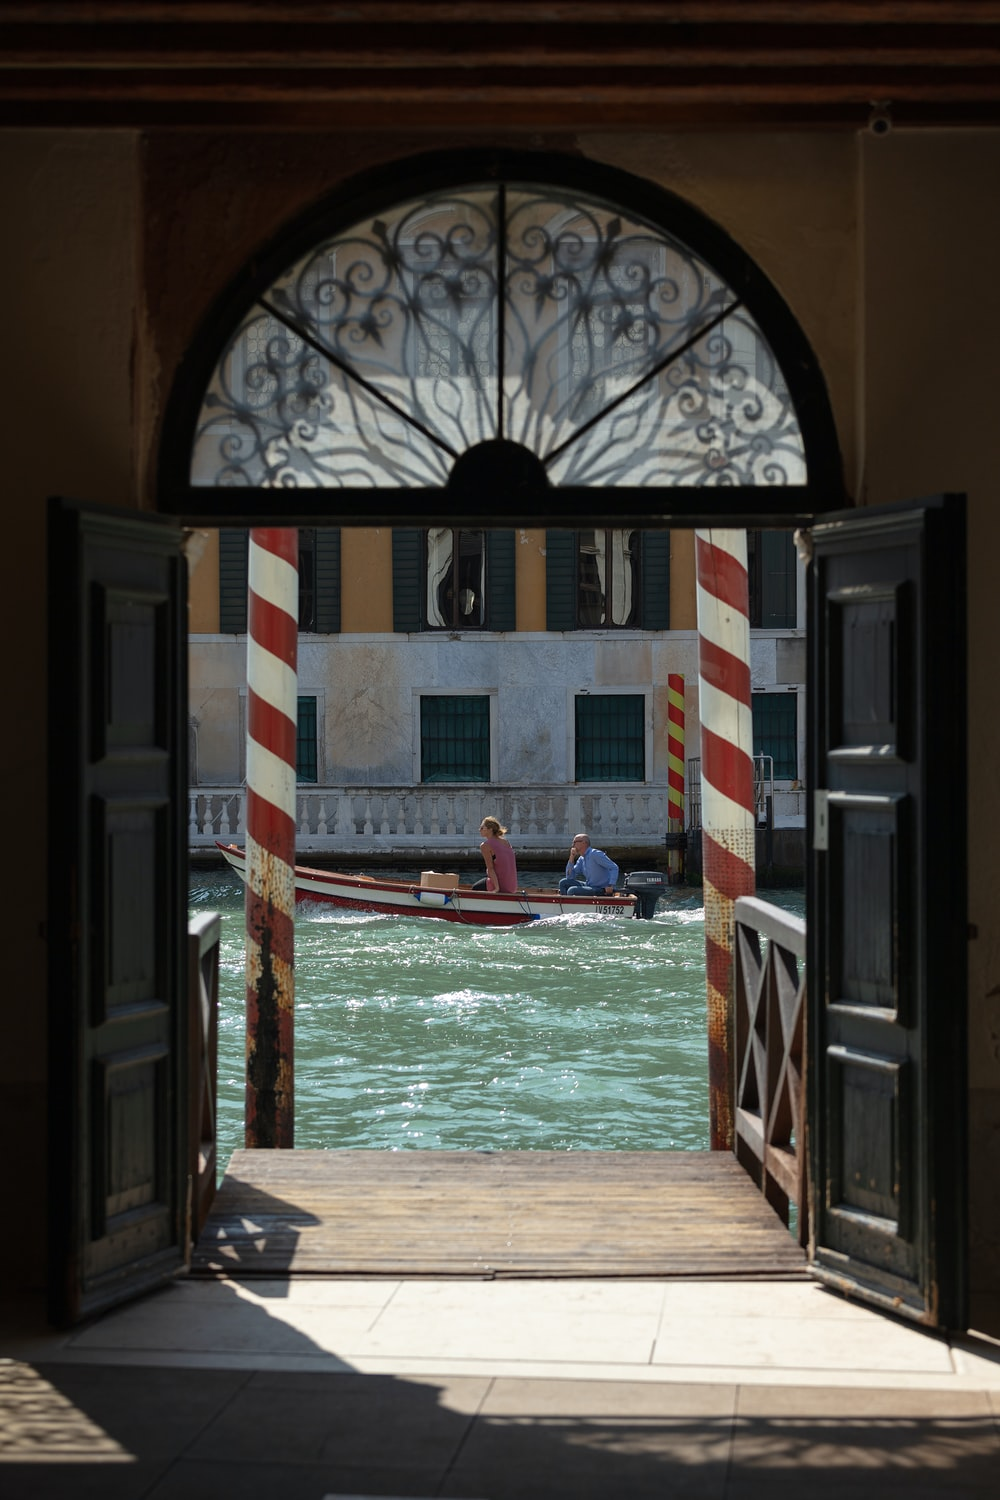 an open door leading to a canal